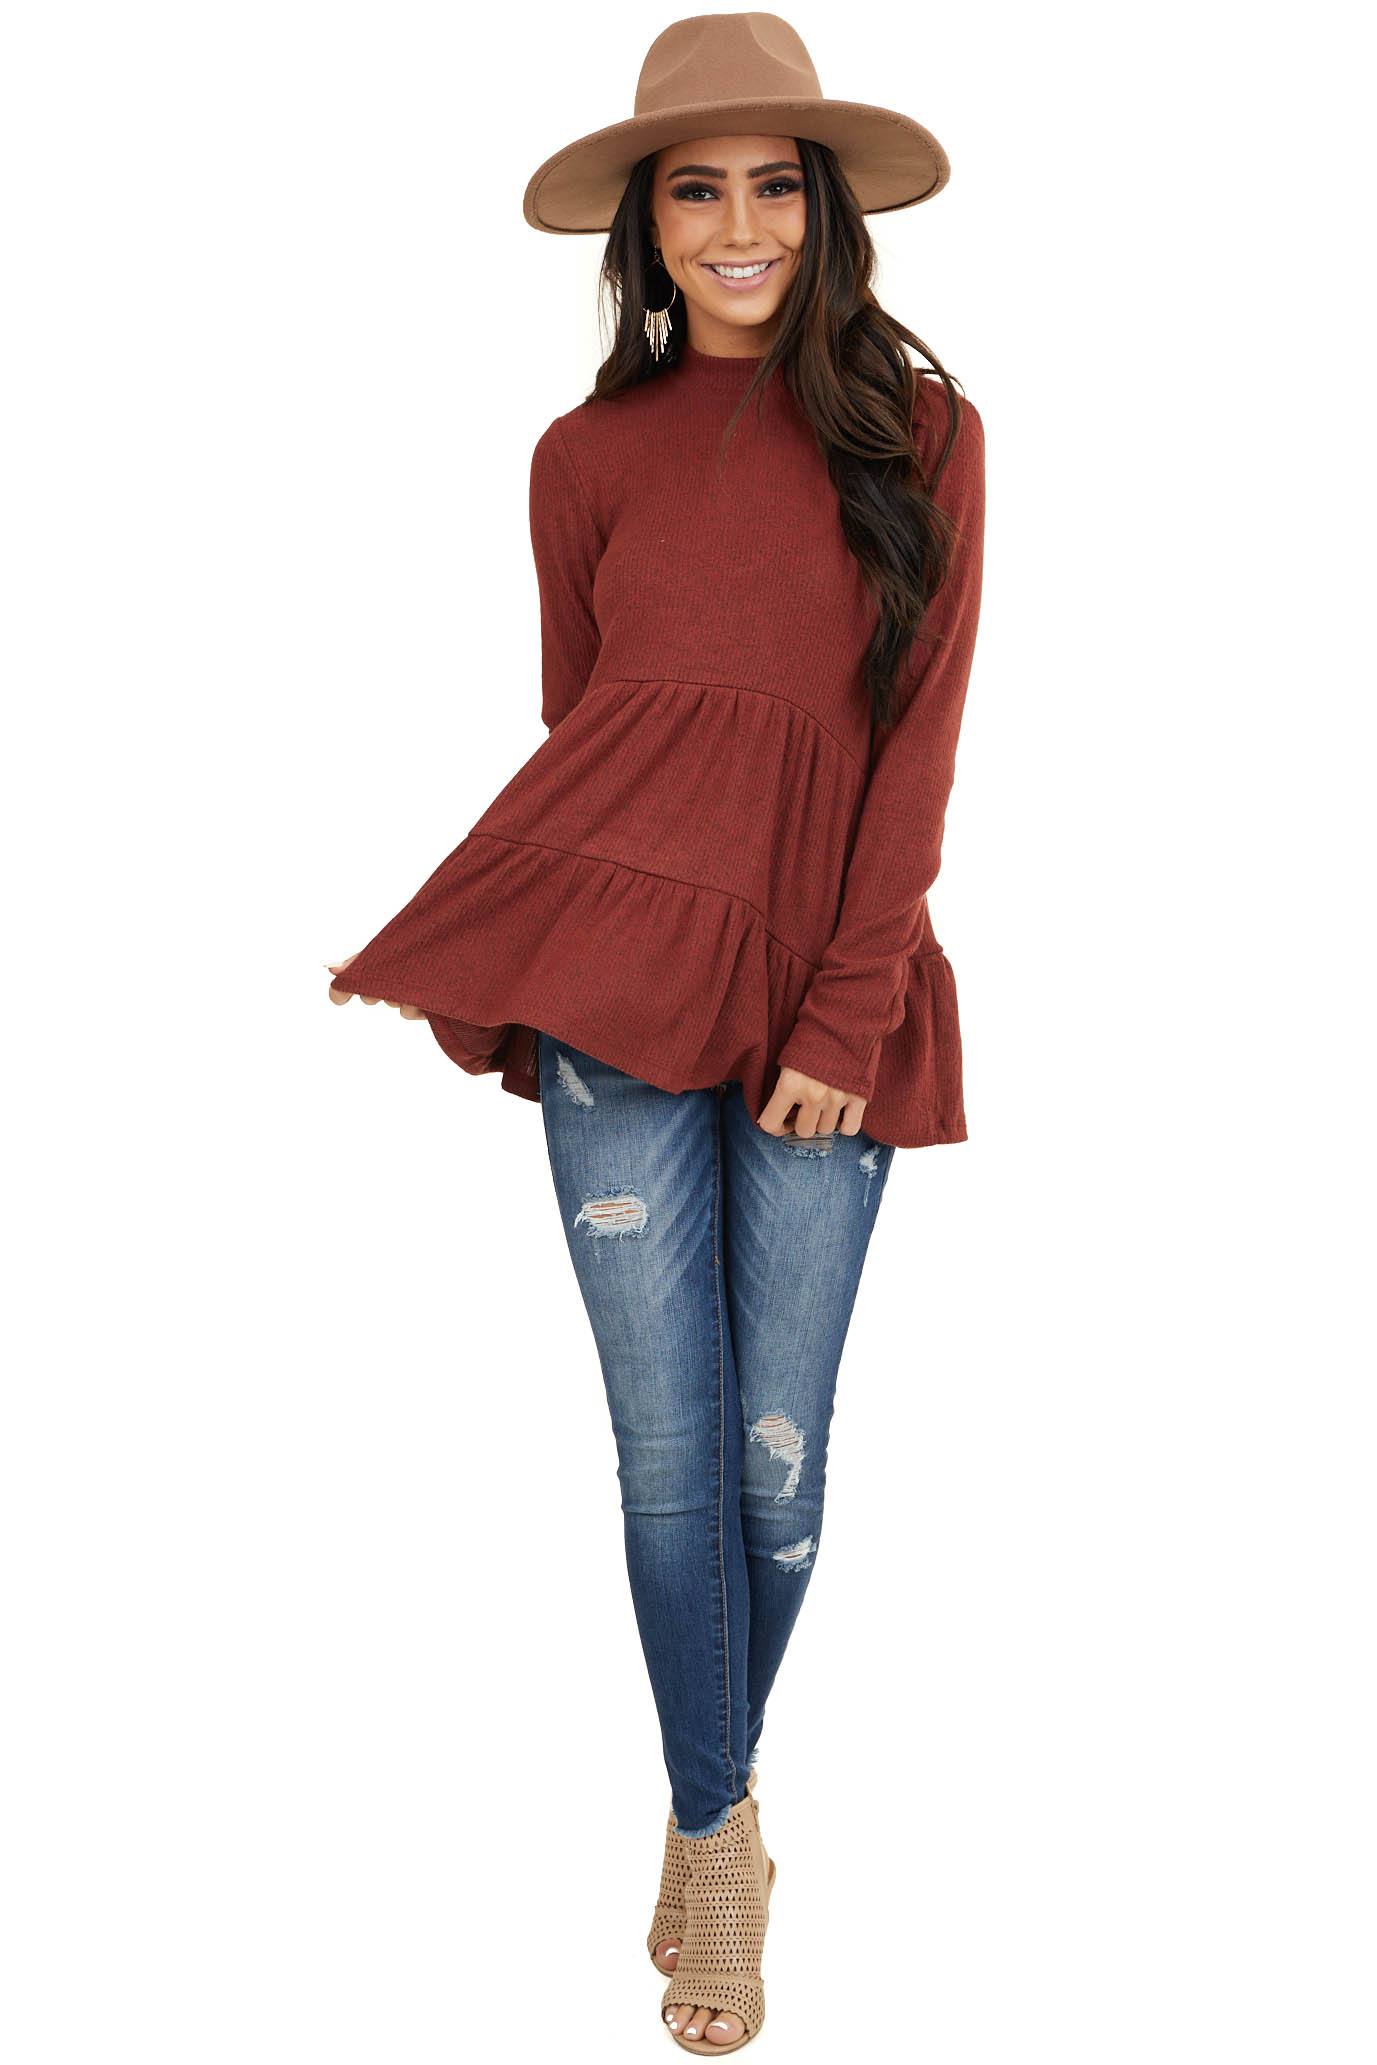 Heathered Burgundy Mock Neck Knit Top with Long Sleeves